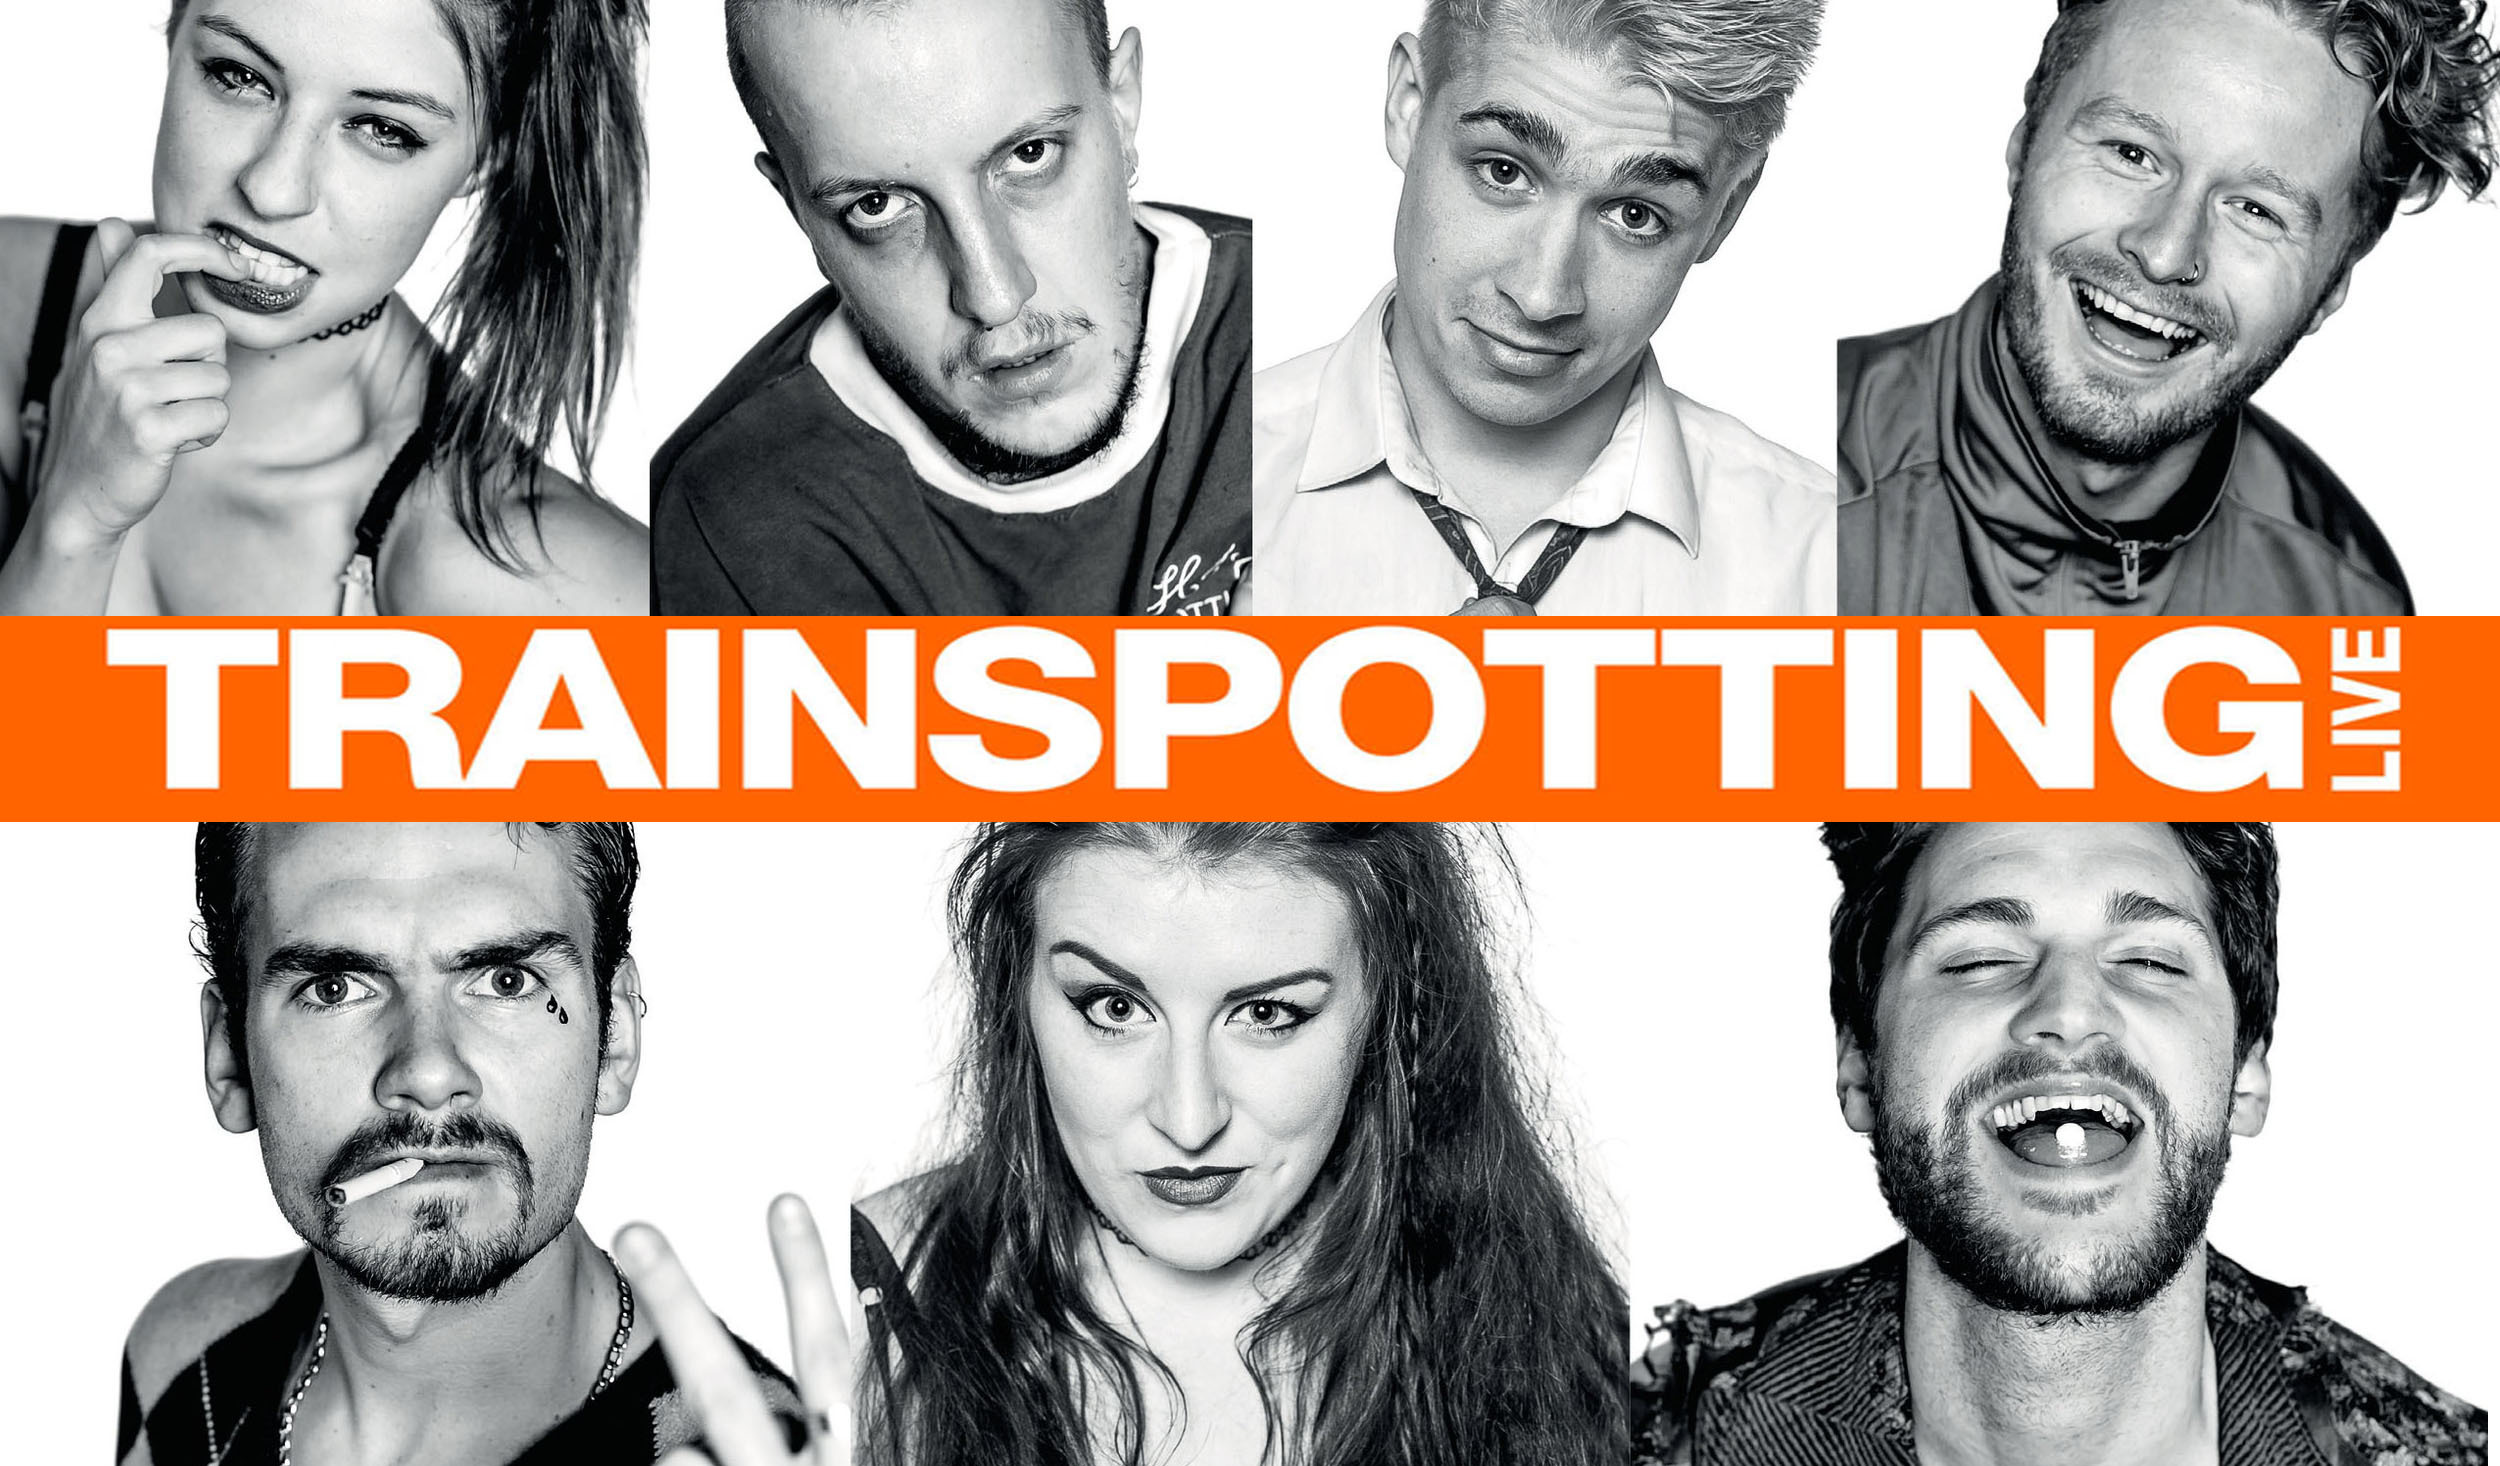 The cast of the NYC Trainspotting show won't tone down the accents